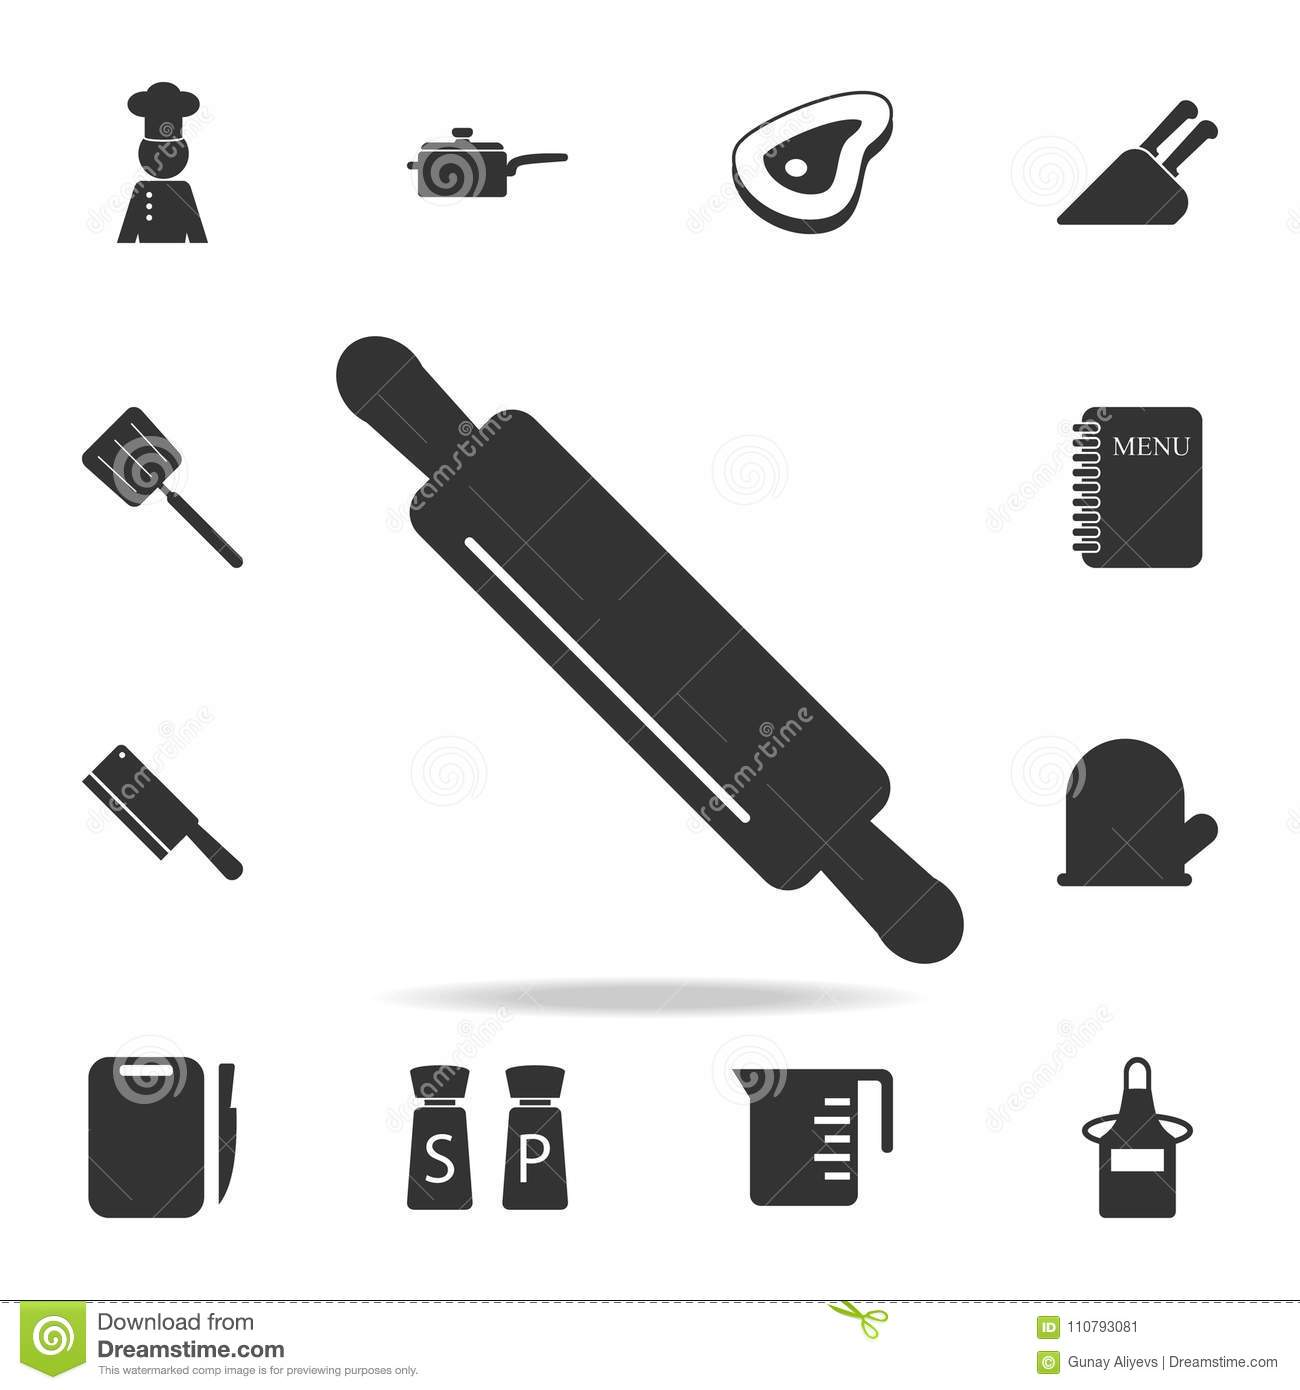 Kitchen rolling pin icon set of chef and kitchen element icons kitchen rolling pin icon set of chef and kitchen element icons premium quality graphic design signs and symbols collection ico buycottarizona Choice Image